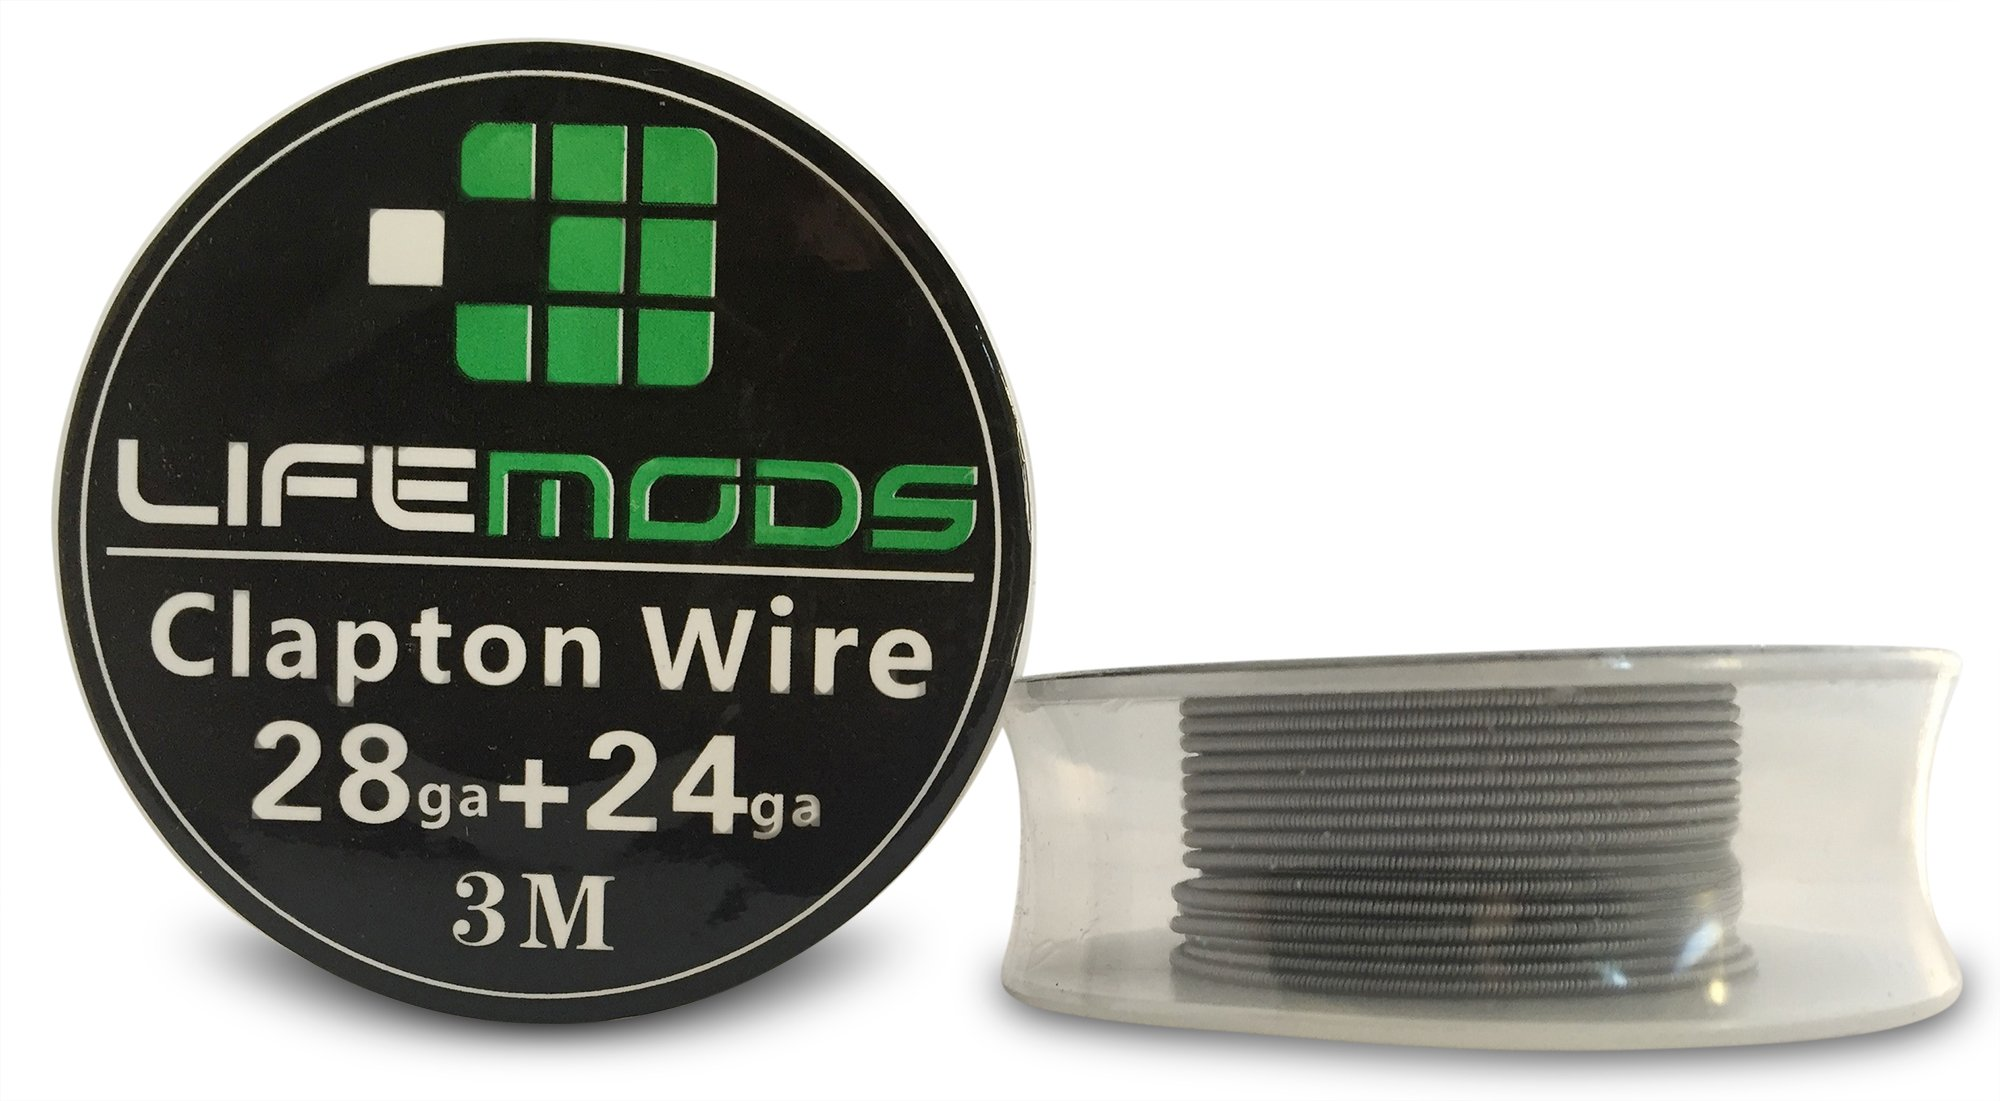 LifeMods Clapton Stainless Steel Wire AISI 316L spool AWG 28/24 gauge 10' feet/roll